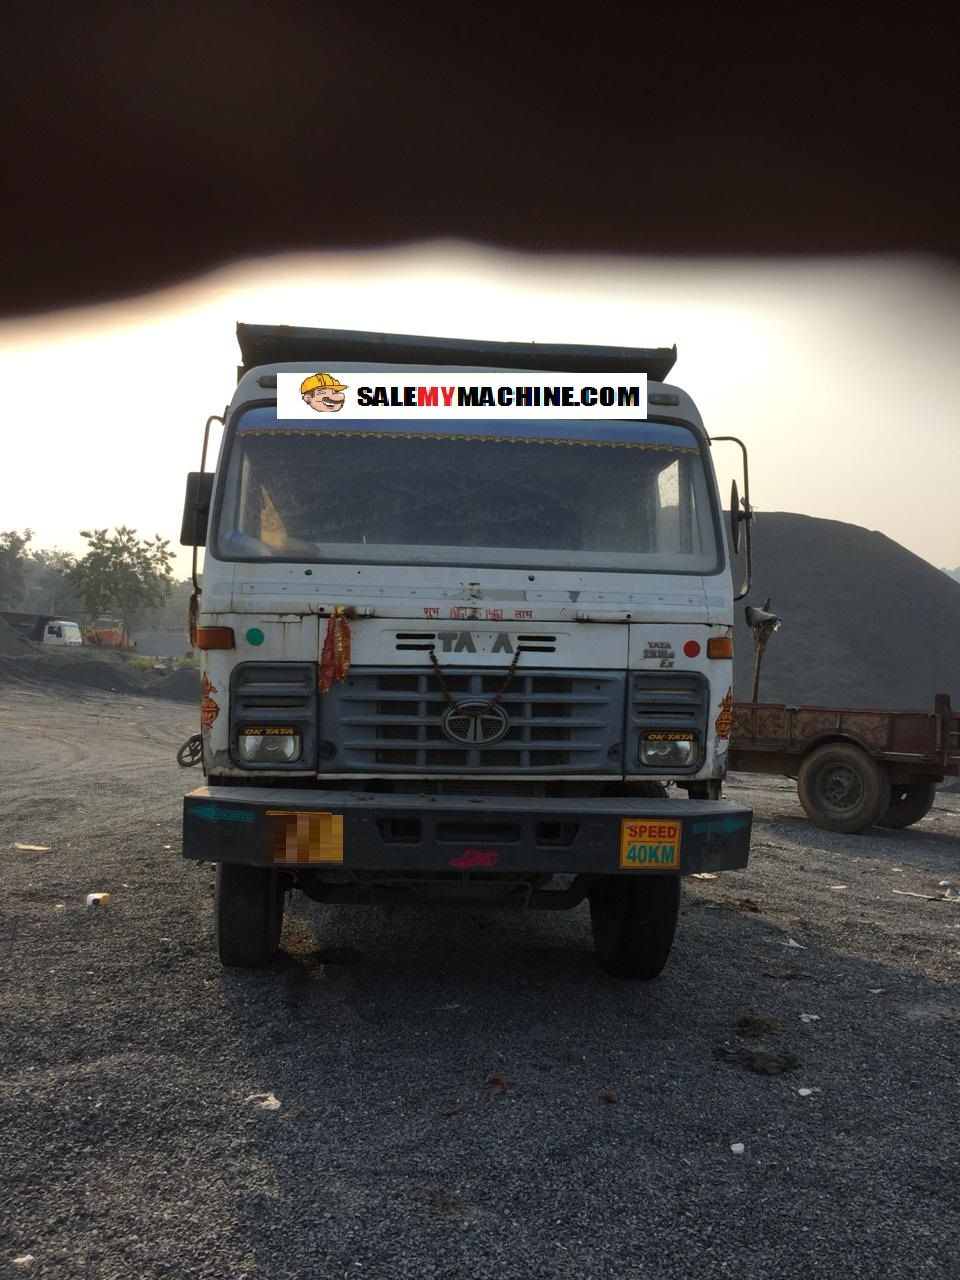 FIND USED SECOND HAND 2518 TATA HYVA FOR SALE IN ODISHA